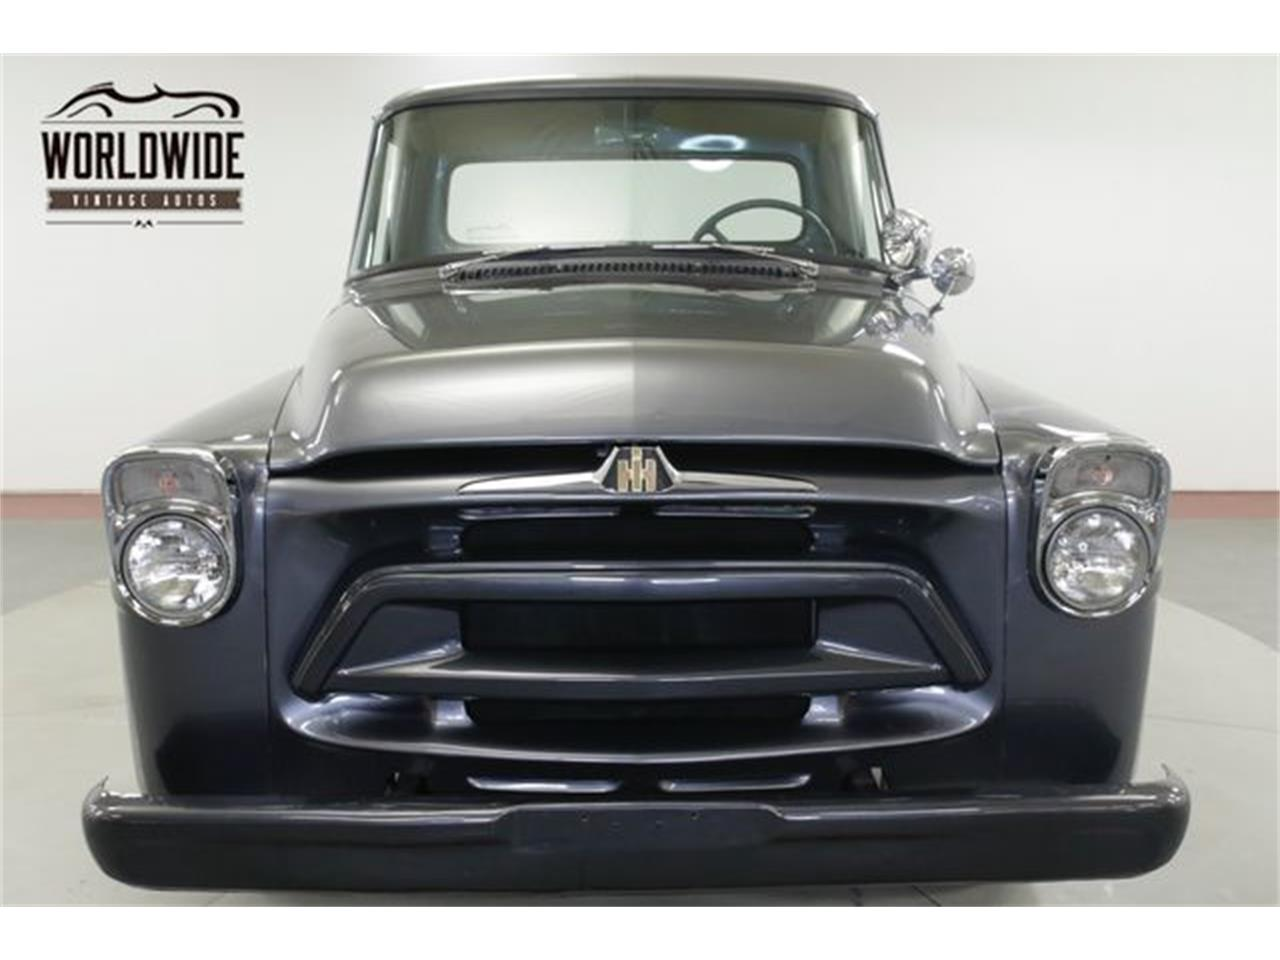 Large Picture of Classic 1958 International Pickup located in Denver  Colorado - $19,900.00 - R1LO